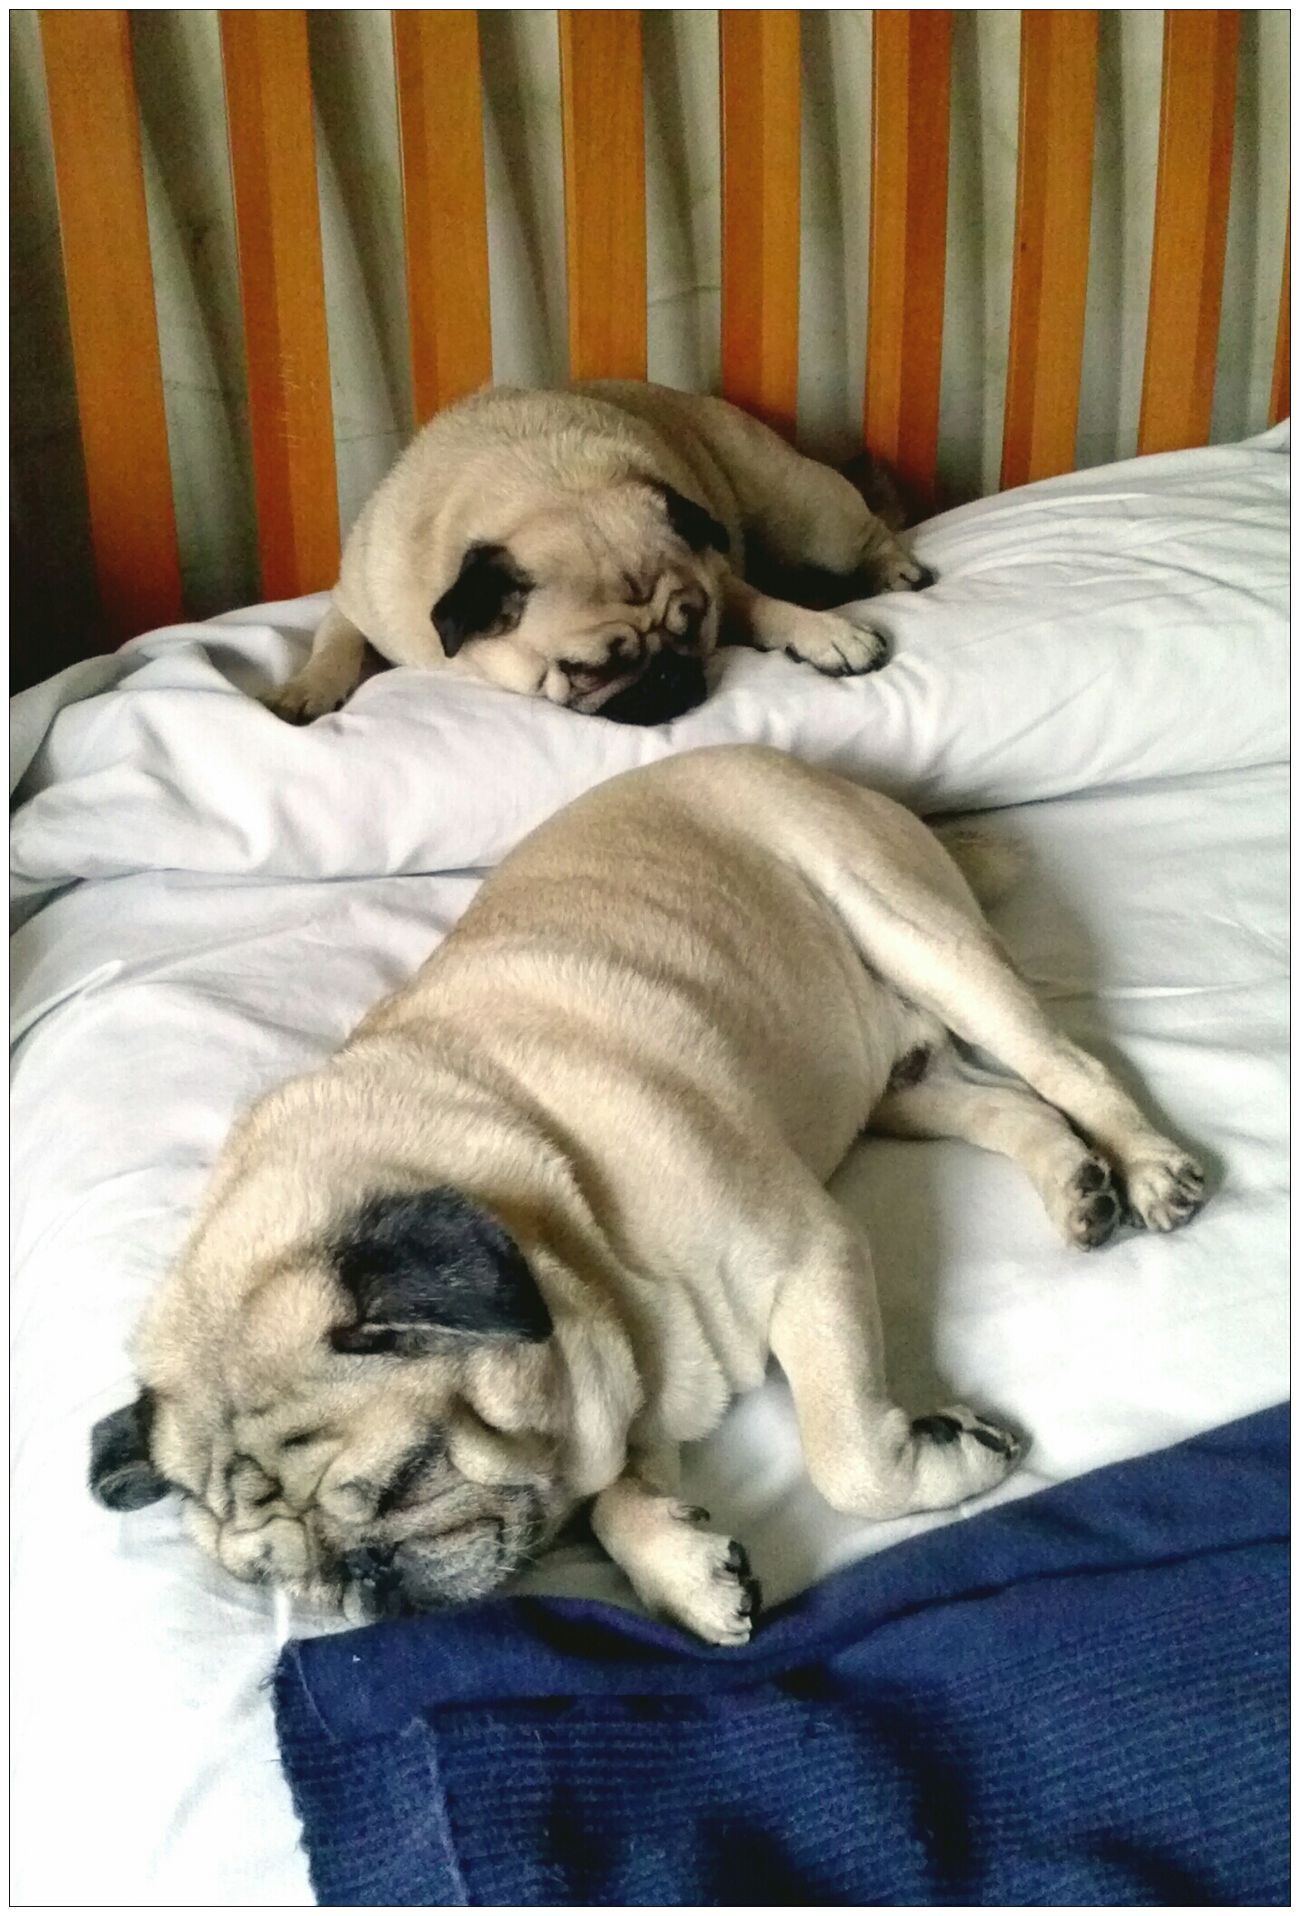 The pug-sound of silence Torino, Italy Carlino Pug Life  Pug Love Mummy Love  Turin Italy Lovepugs Carlino Pug Carlino Cane Dog Sleeping Sleep Sleeping Dog Sleep Time Dormire Nanna